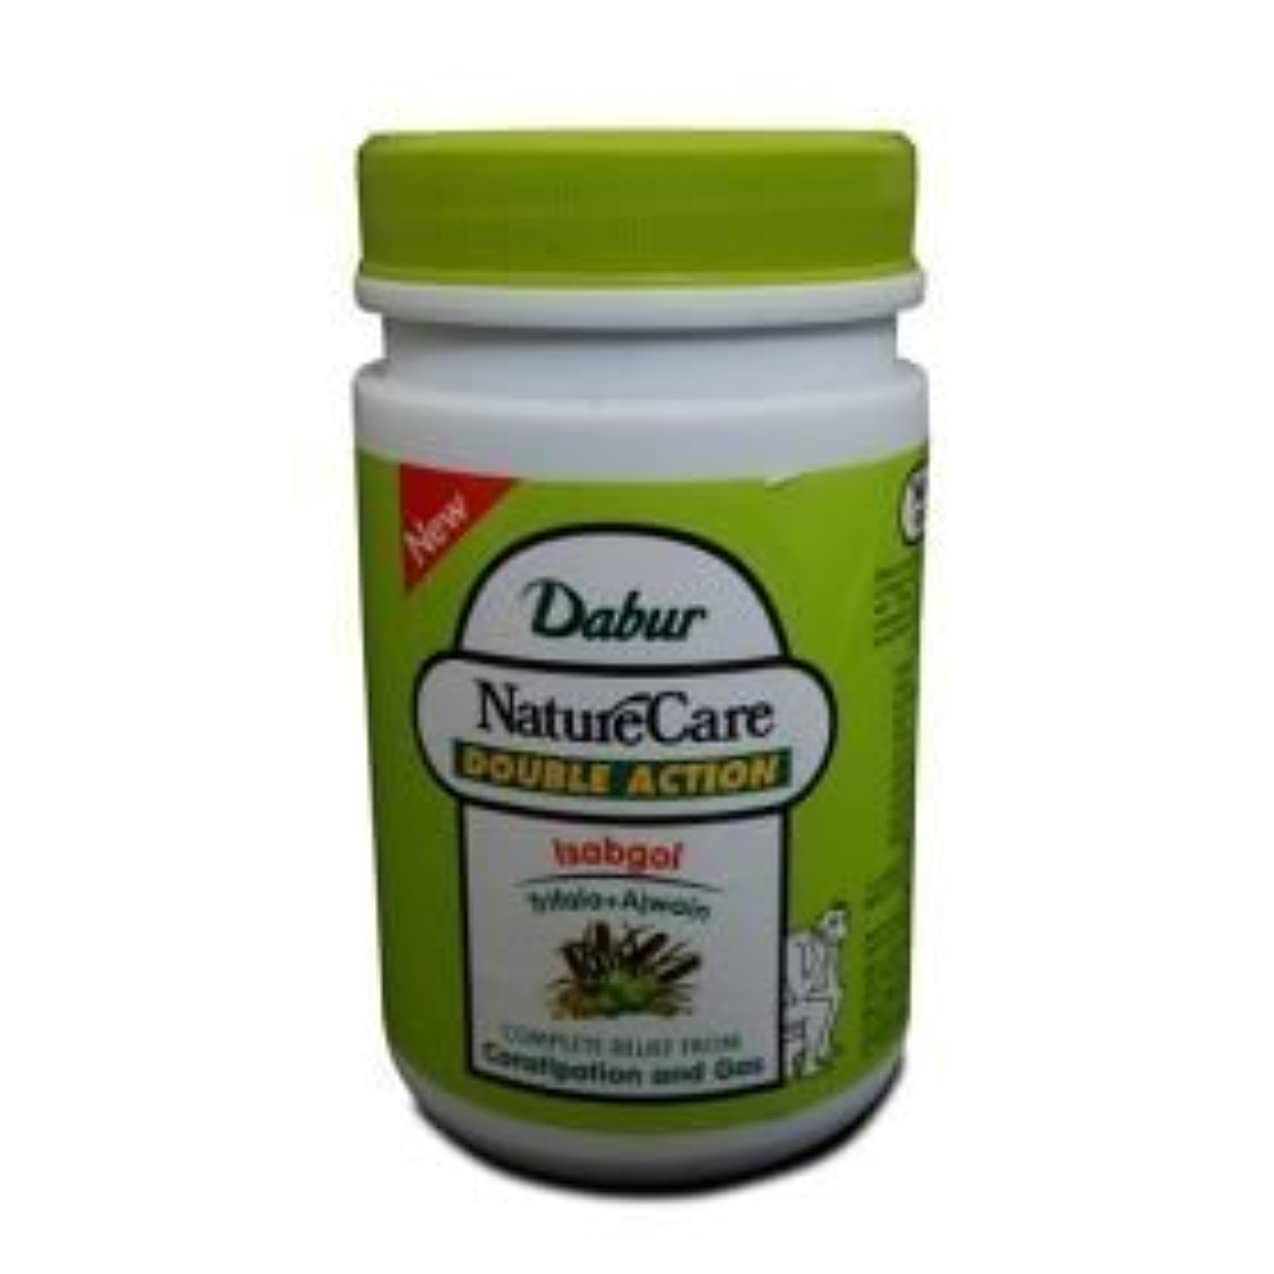 クロール悪名高い創傷Dabur Naturecare Double Action Isabgol Husk Effective Relief From Gas,constipation 100 Grams by Dabur [並行輸入品]